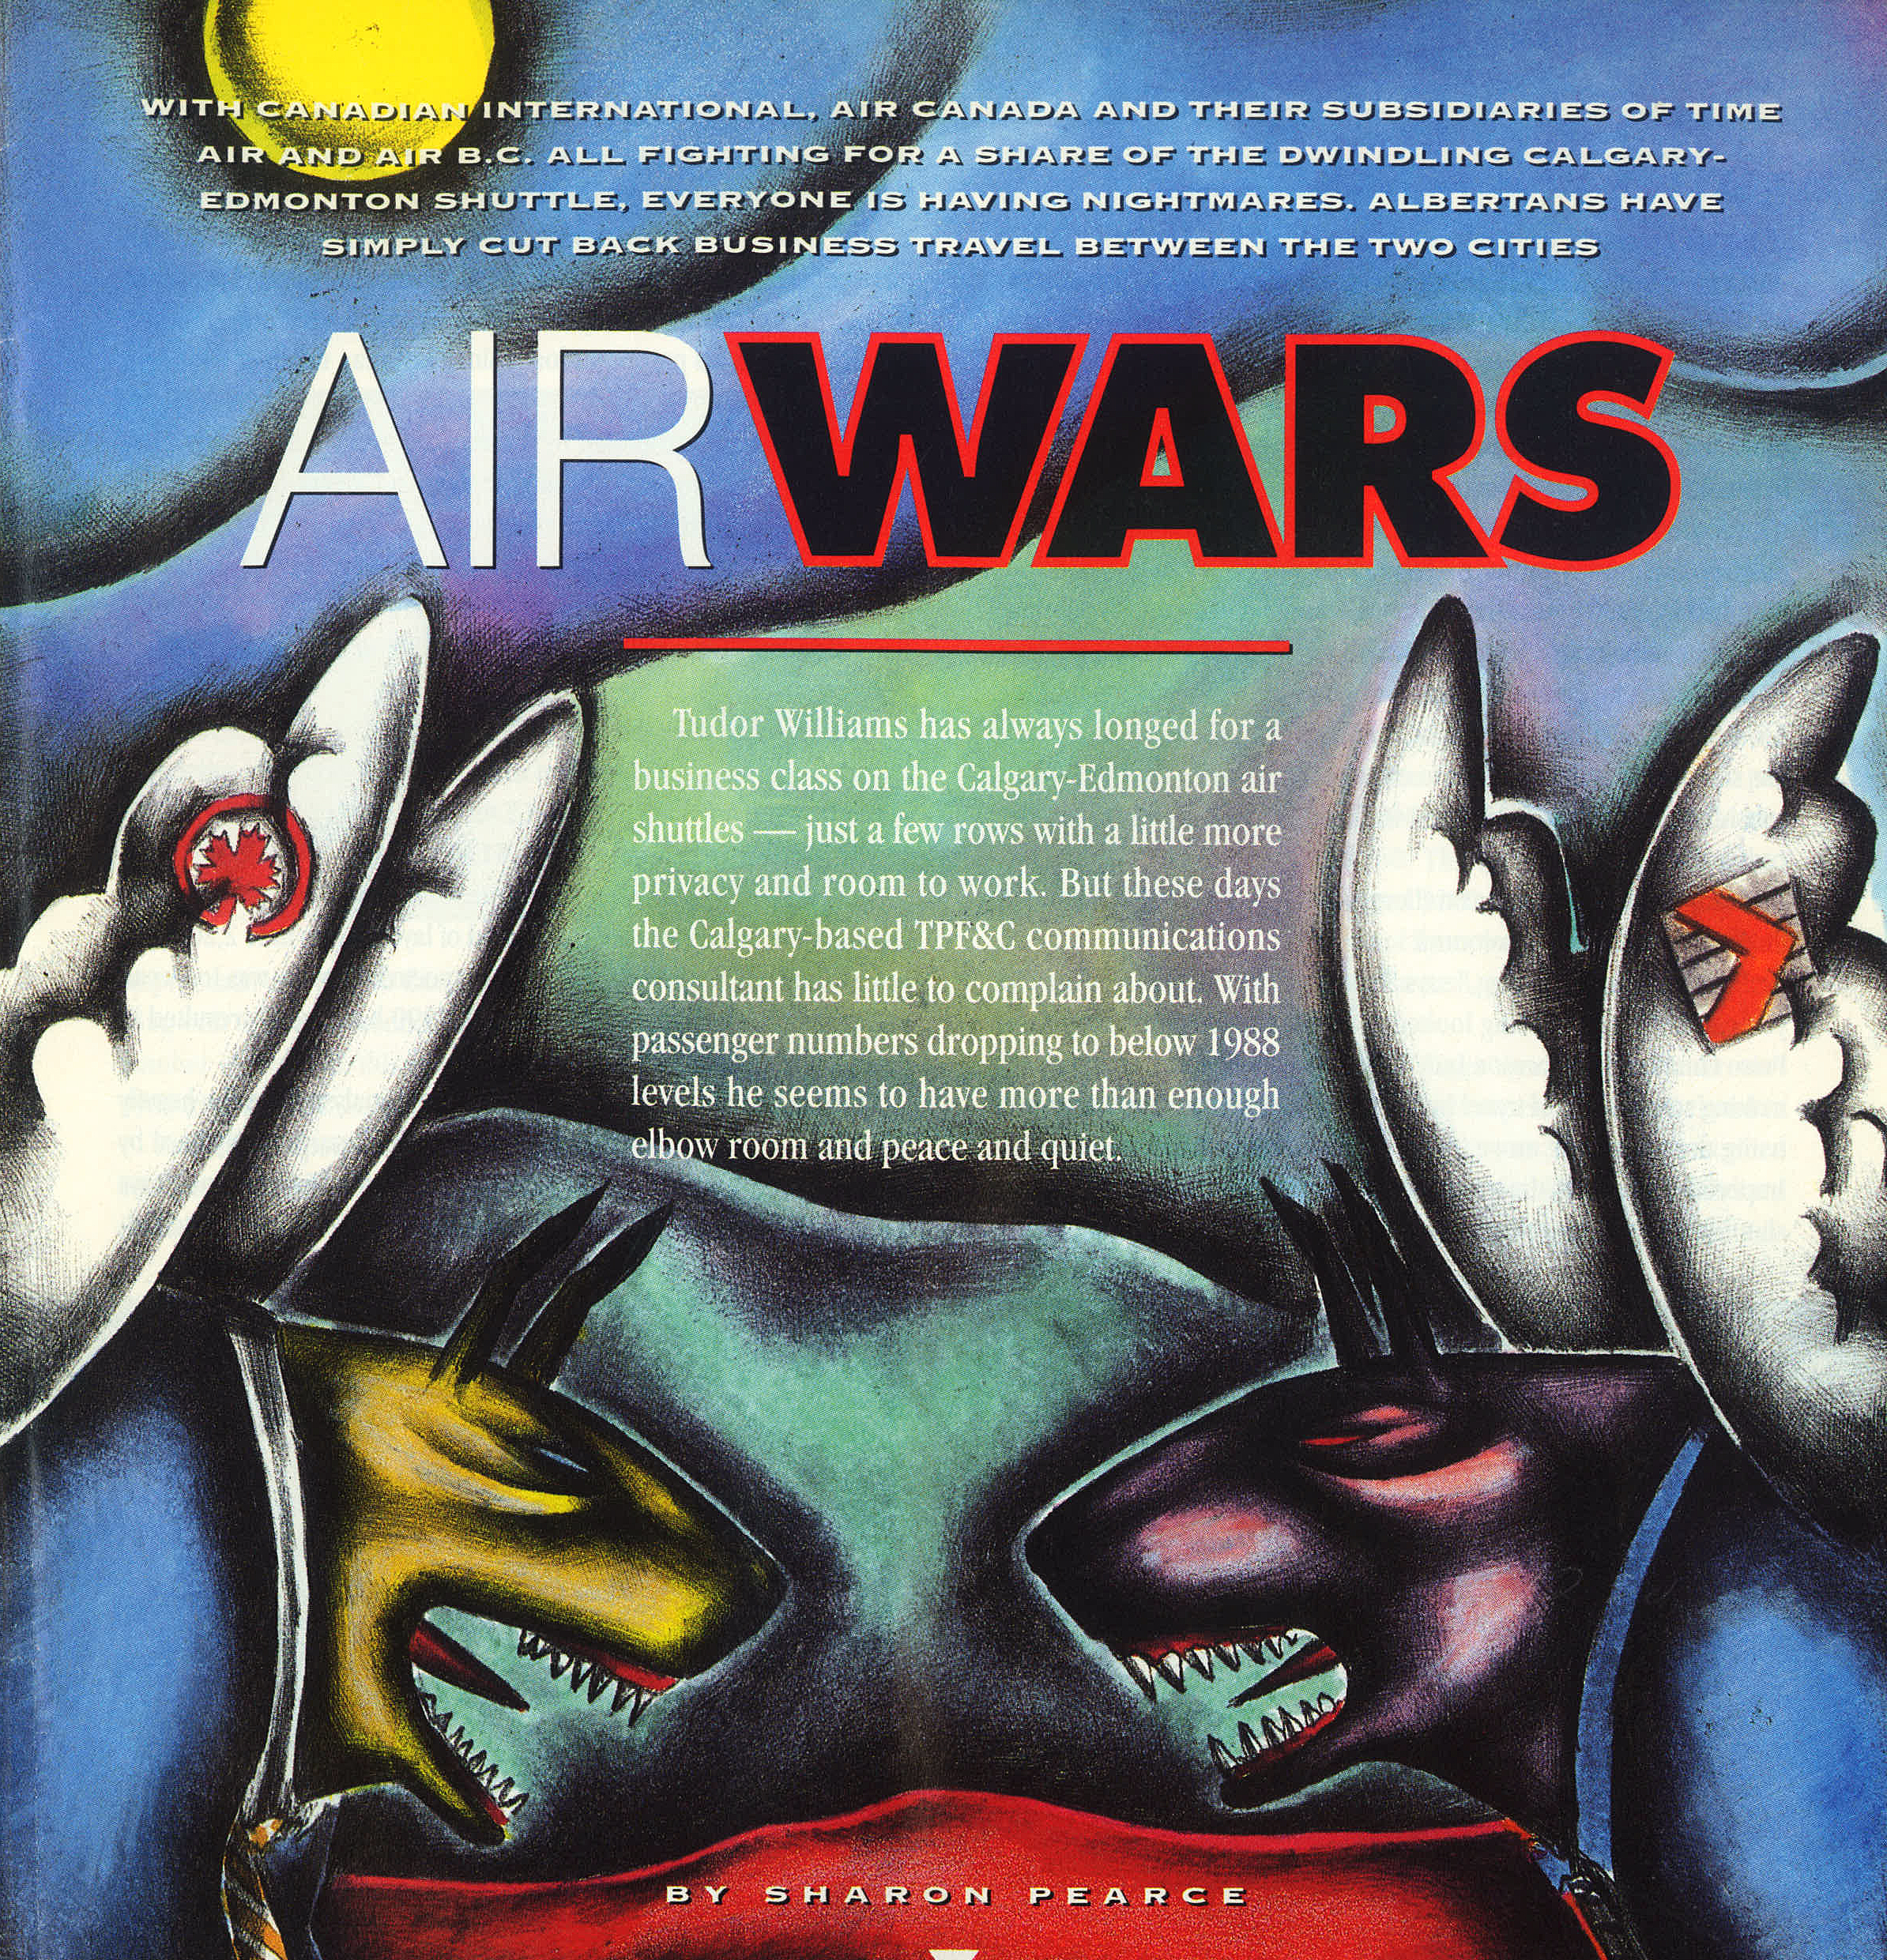 Alberta Business Air Wars cover cropped.